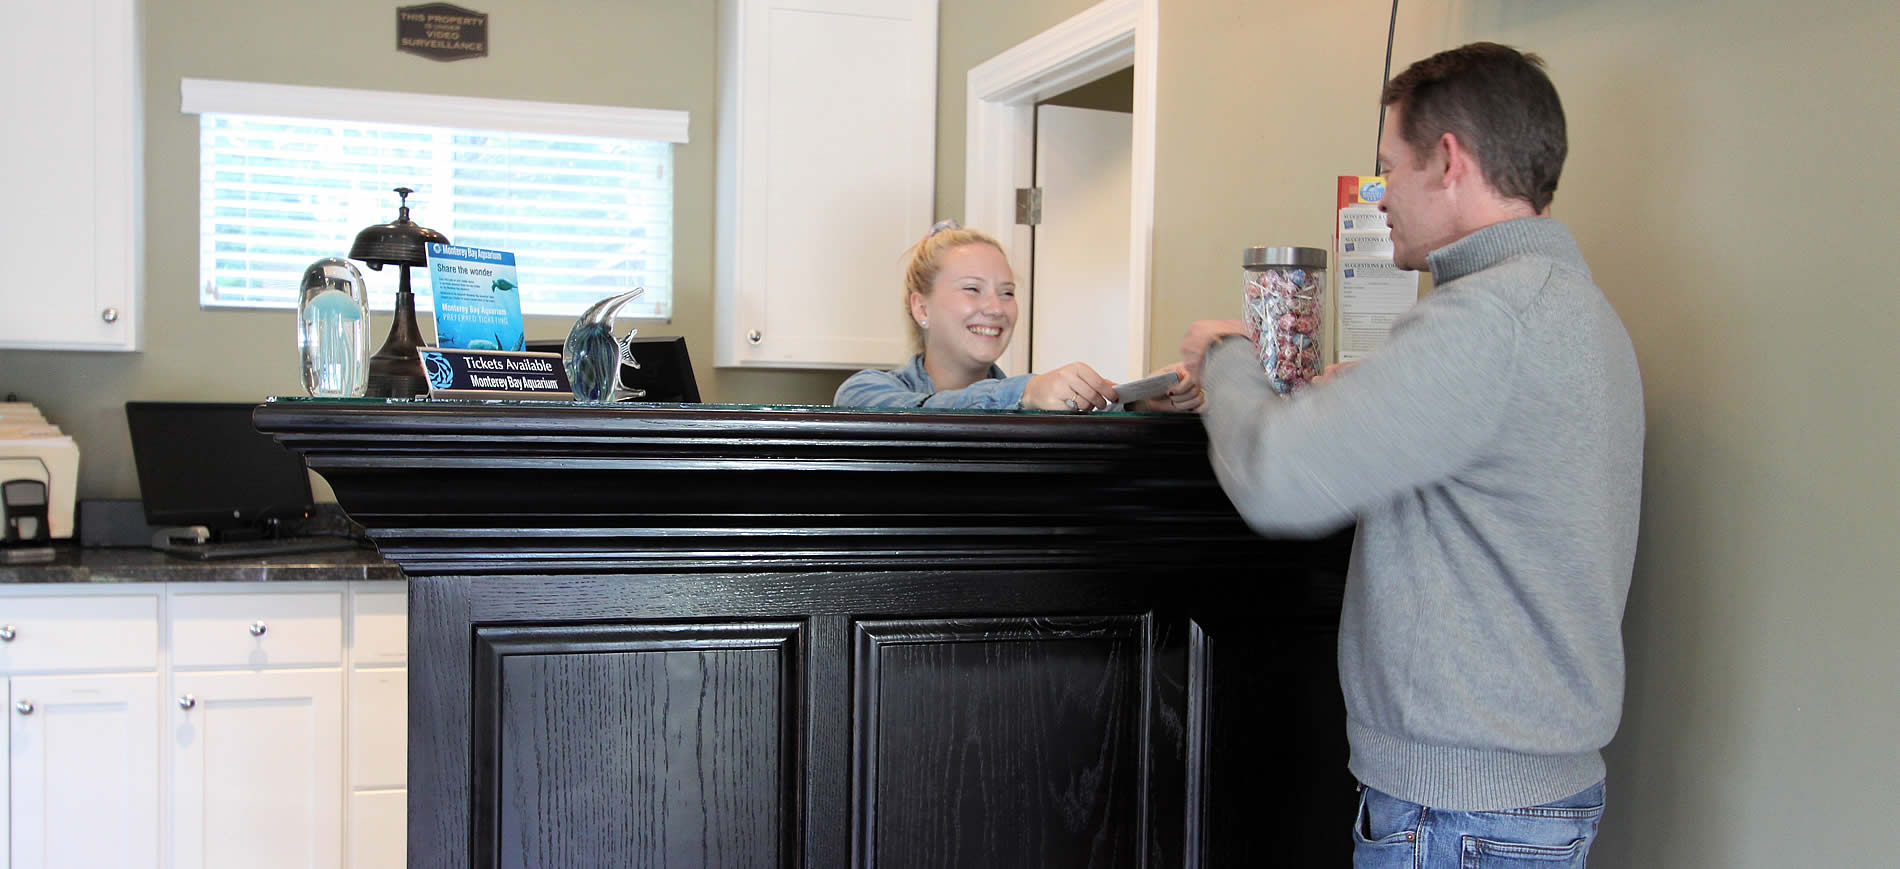 welcome to the monterey peninsula inn - woman at desk greeting customer